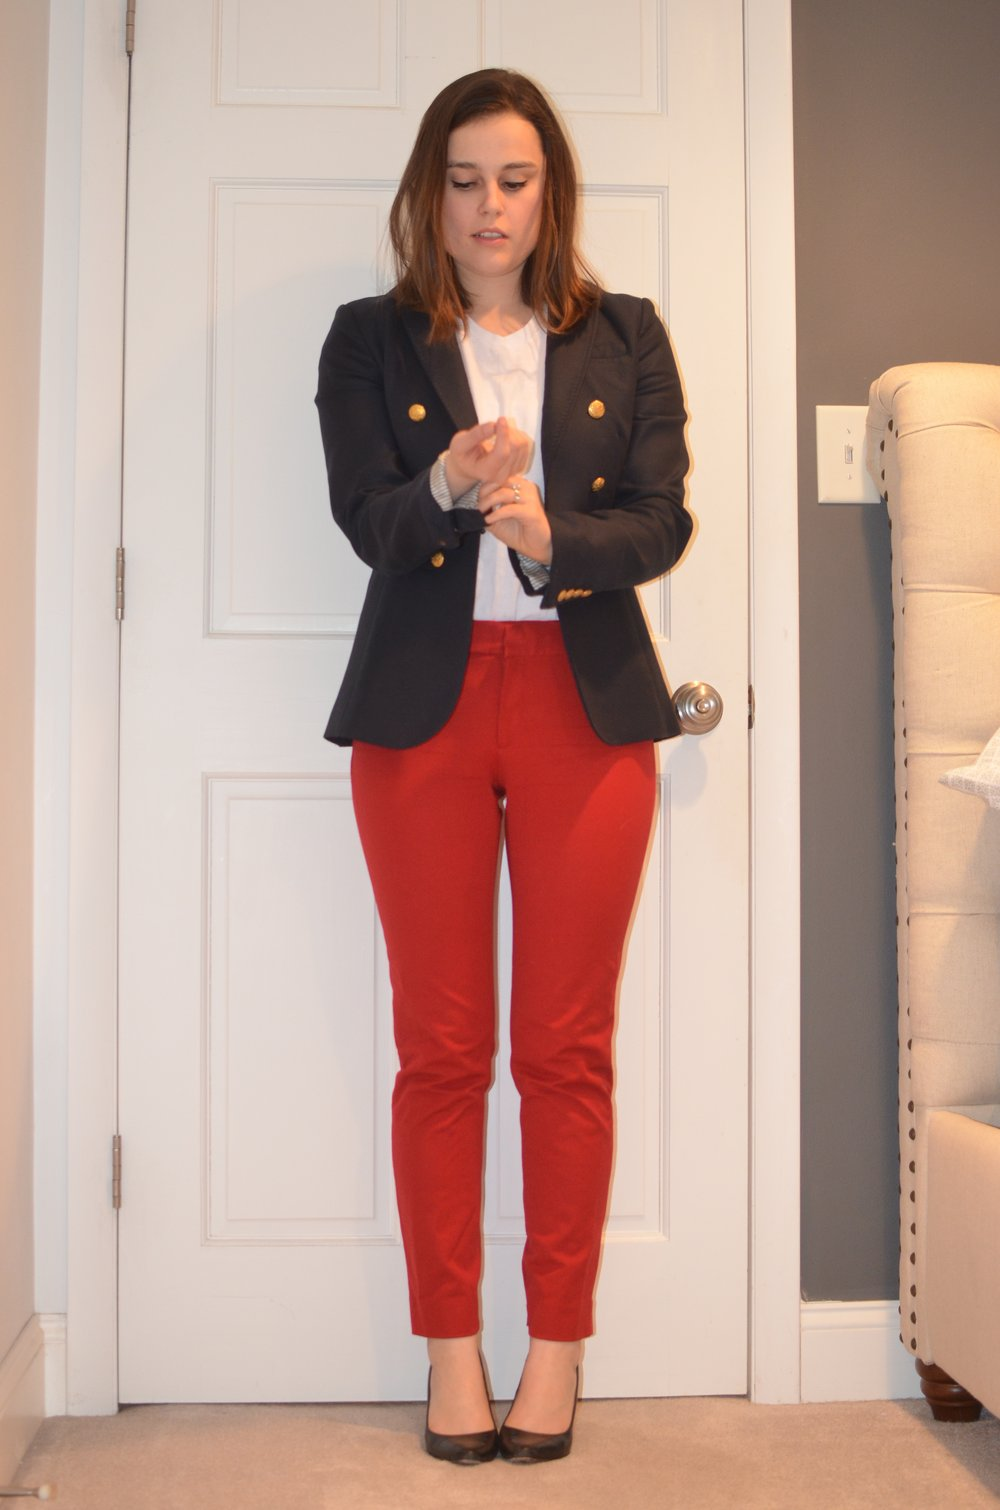 White T shirt (same as all of the other pictures. My husband only wears the one brand). Trousers are from Banana Republic - Sloane pant. Heels - Cole Haan. Blazer - Also Banana Republic.